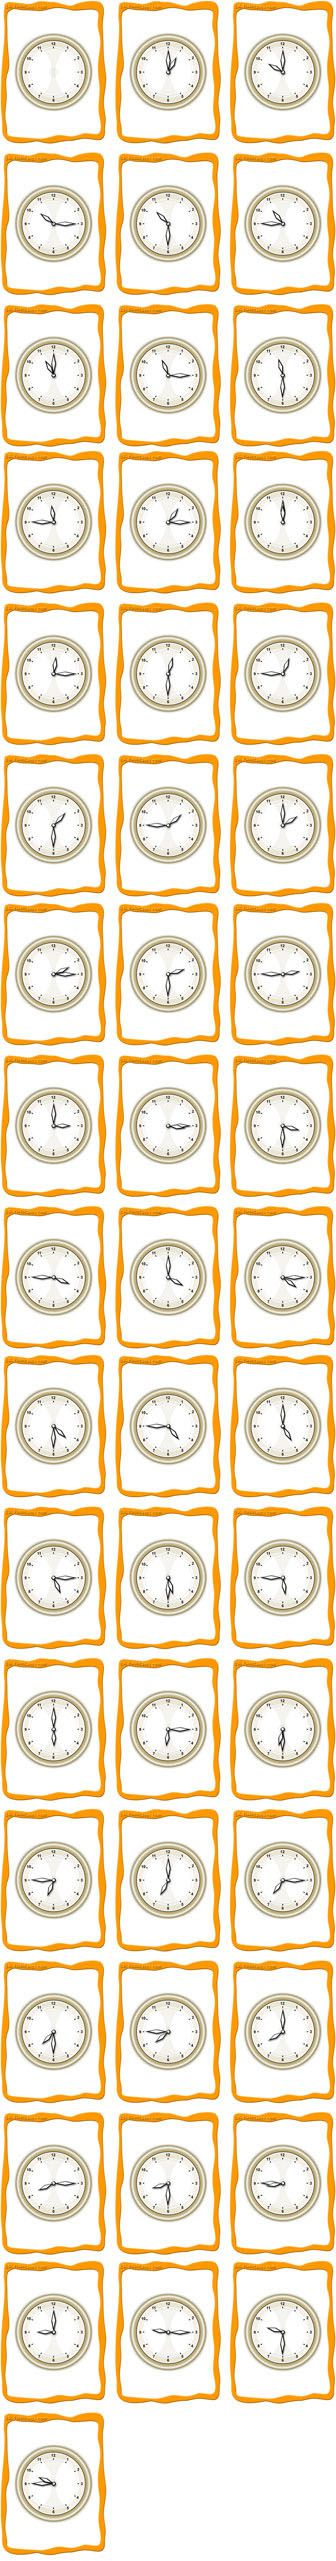 FlashCards for telling time...requires a download of a different PDF reader other than Adobe